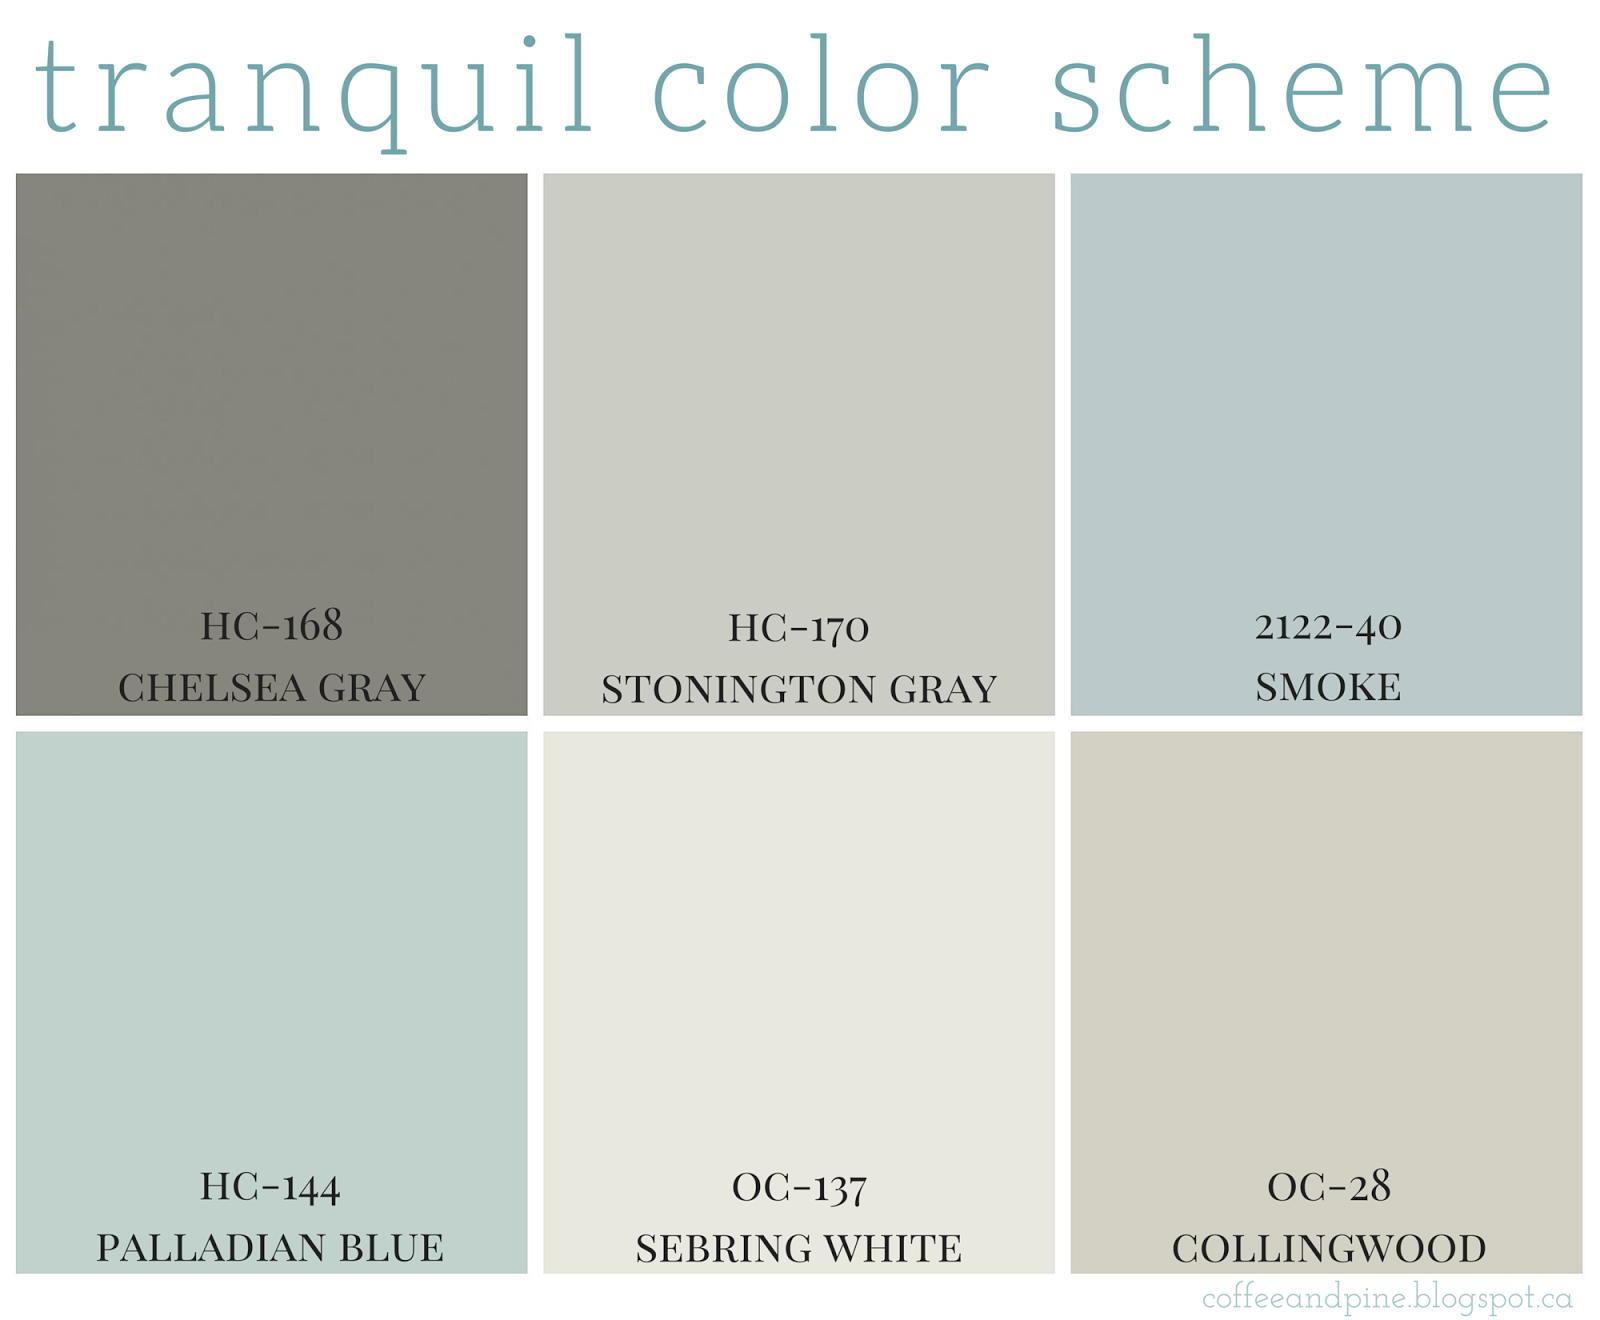 Tranquil Color Scheme | Coffee and Pine | Pinterest | House colors on beige bathroom designs, navy bathroom designs, mosaic tile bathroom designs, fuschia bathroom designs, white bathroom designs, sage bathroom designs, men's bathroom designs, electric blue bathroom designs, brick bathroom designs, hot pink bathroom designs, vintage bathroom designs, cheap bathroom designs, gold bathroom designs, espresso bathroom designs, new home bathroom designs, mauve bathroom designs, fixer upper bathroom designs, chocolate bathroom designs, mint bathroom designs, mahogany bathroom designs,